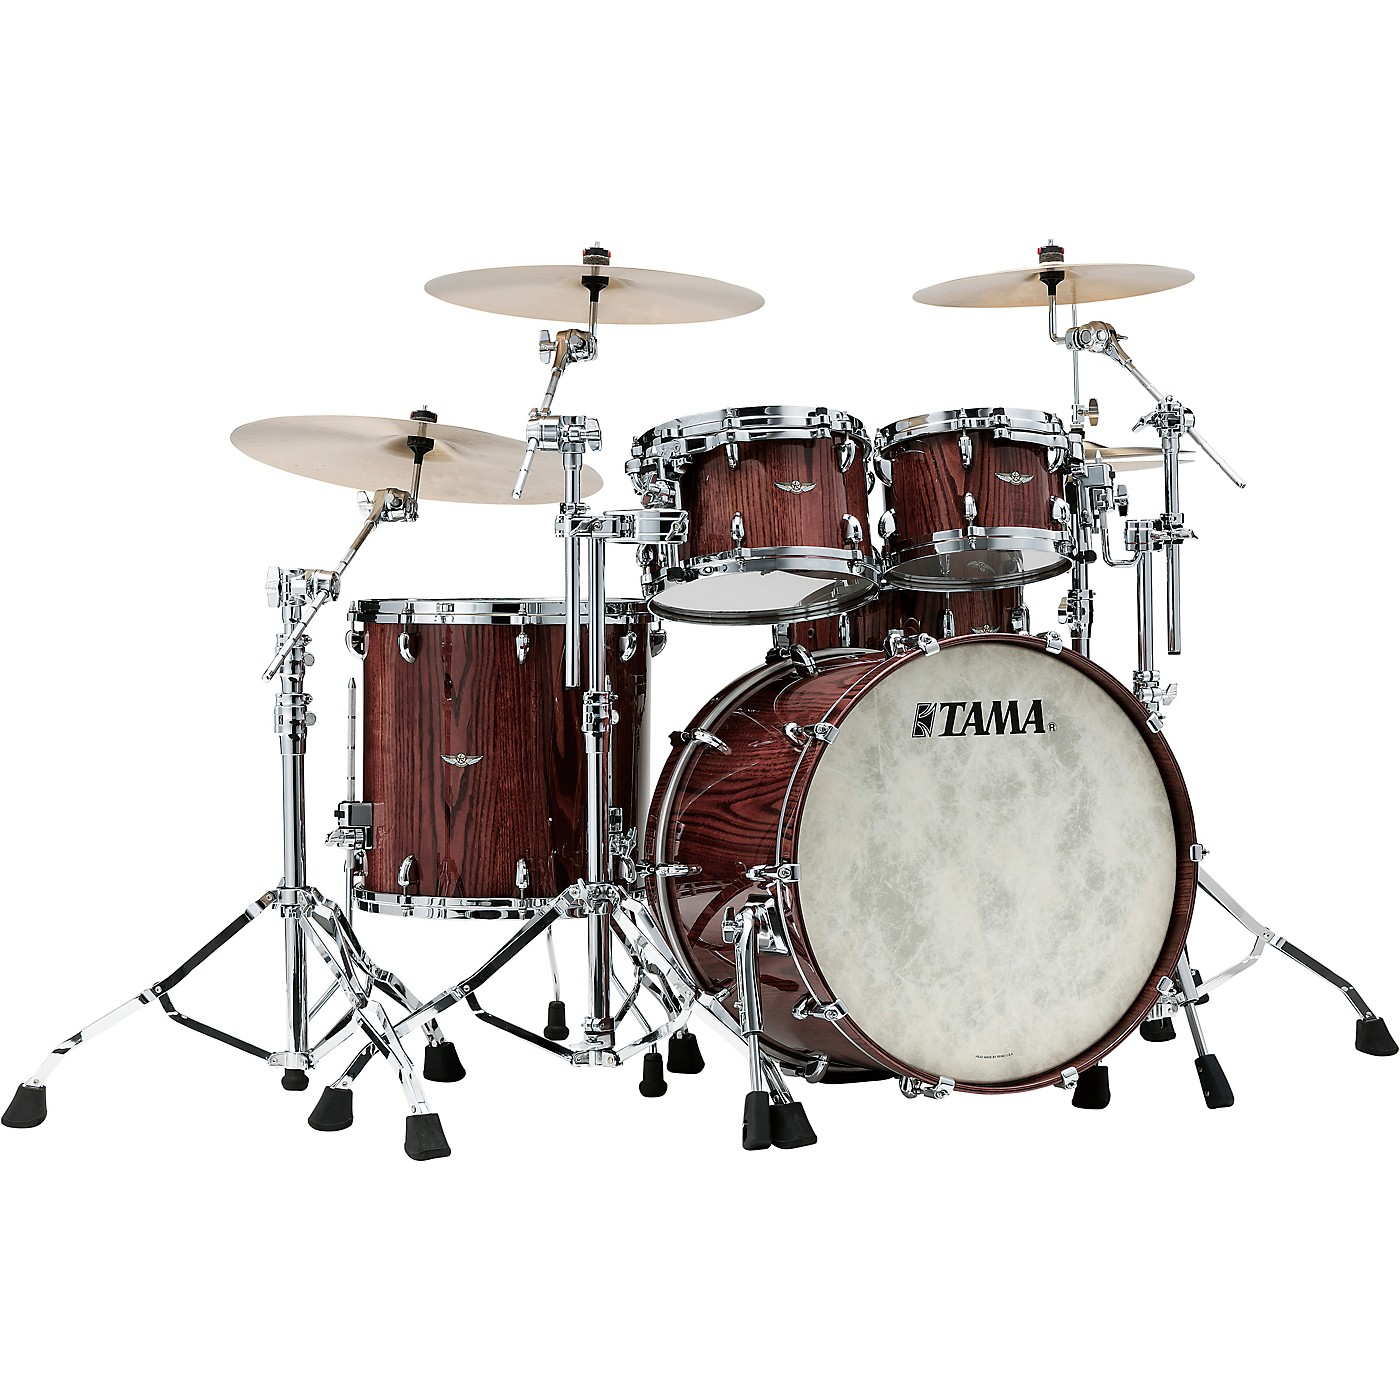 TAMA Star Walnut 4-Piece Shell Pack with 22 in. Bass Drum thumbnail